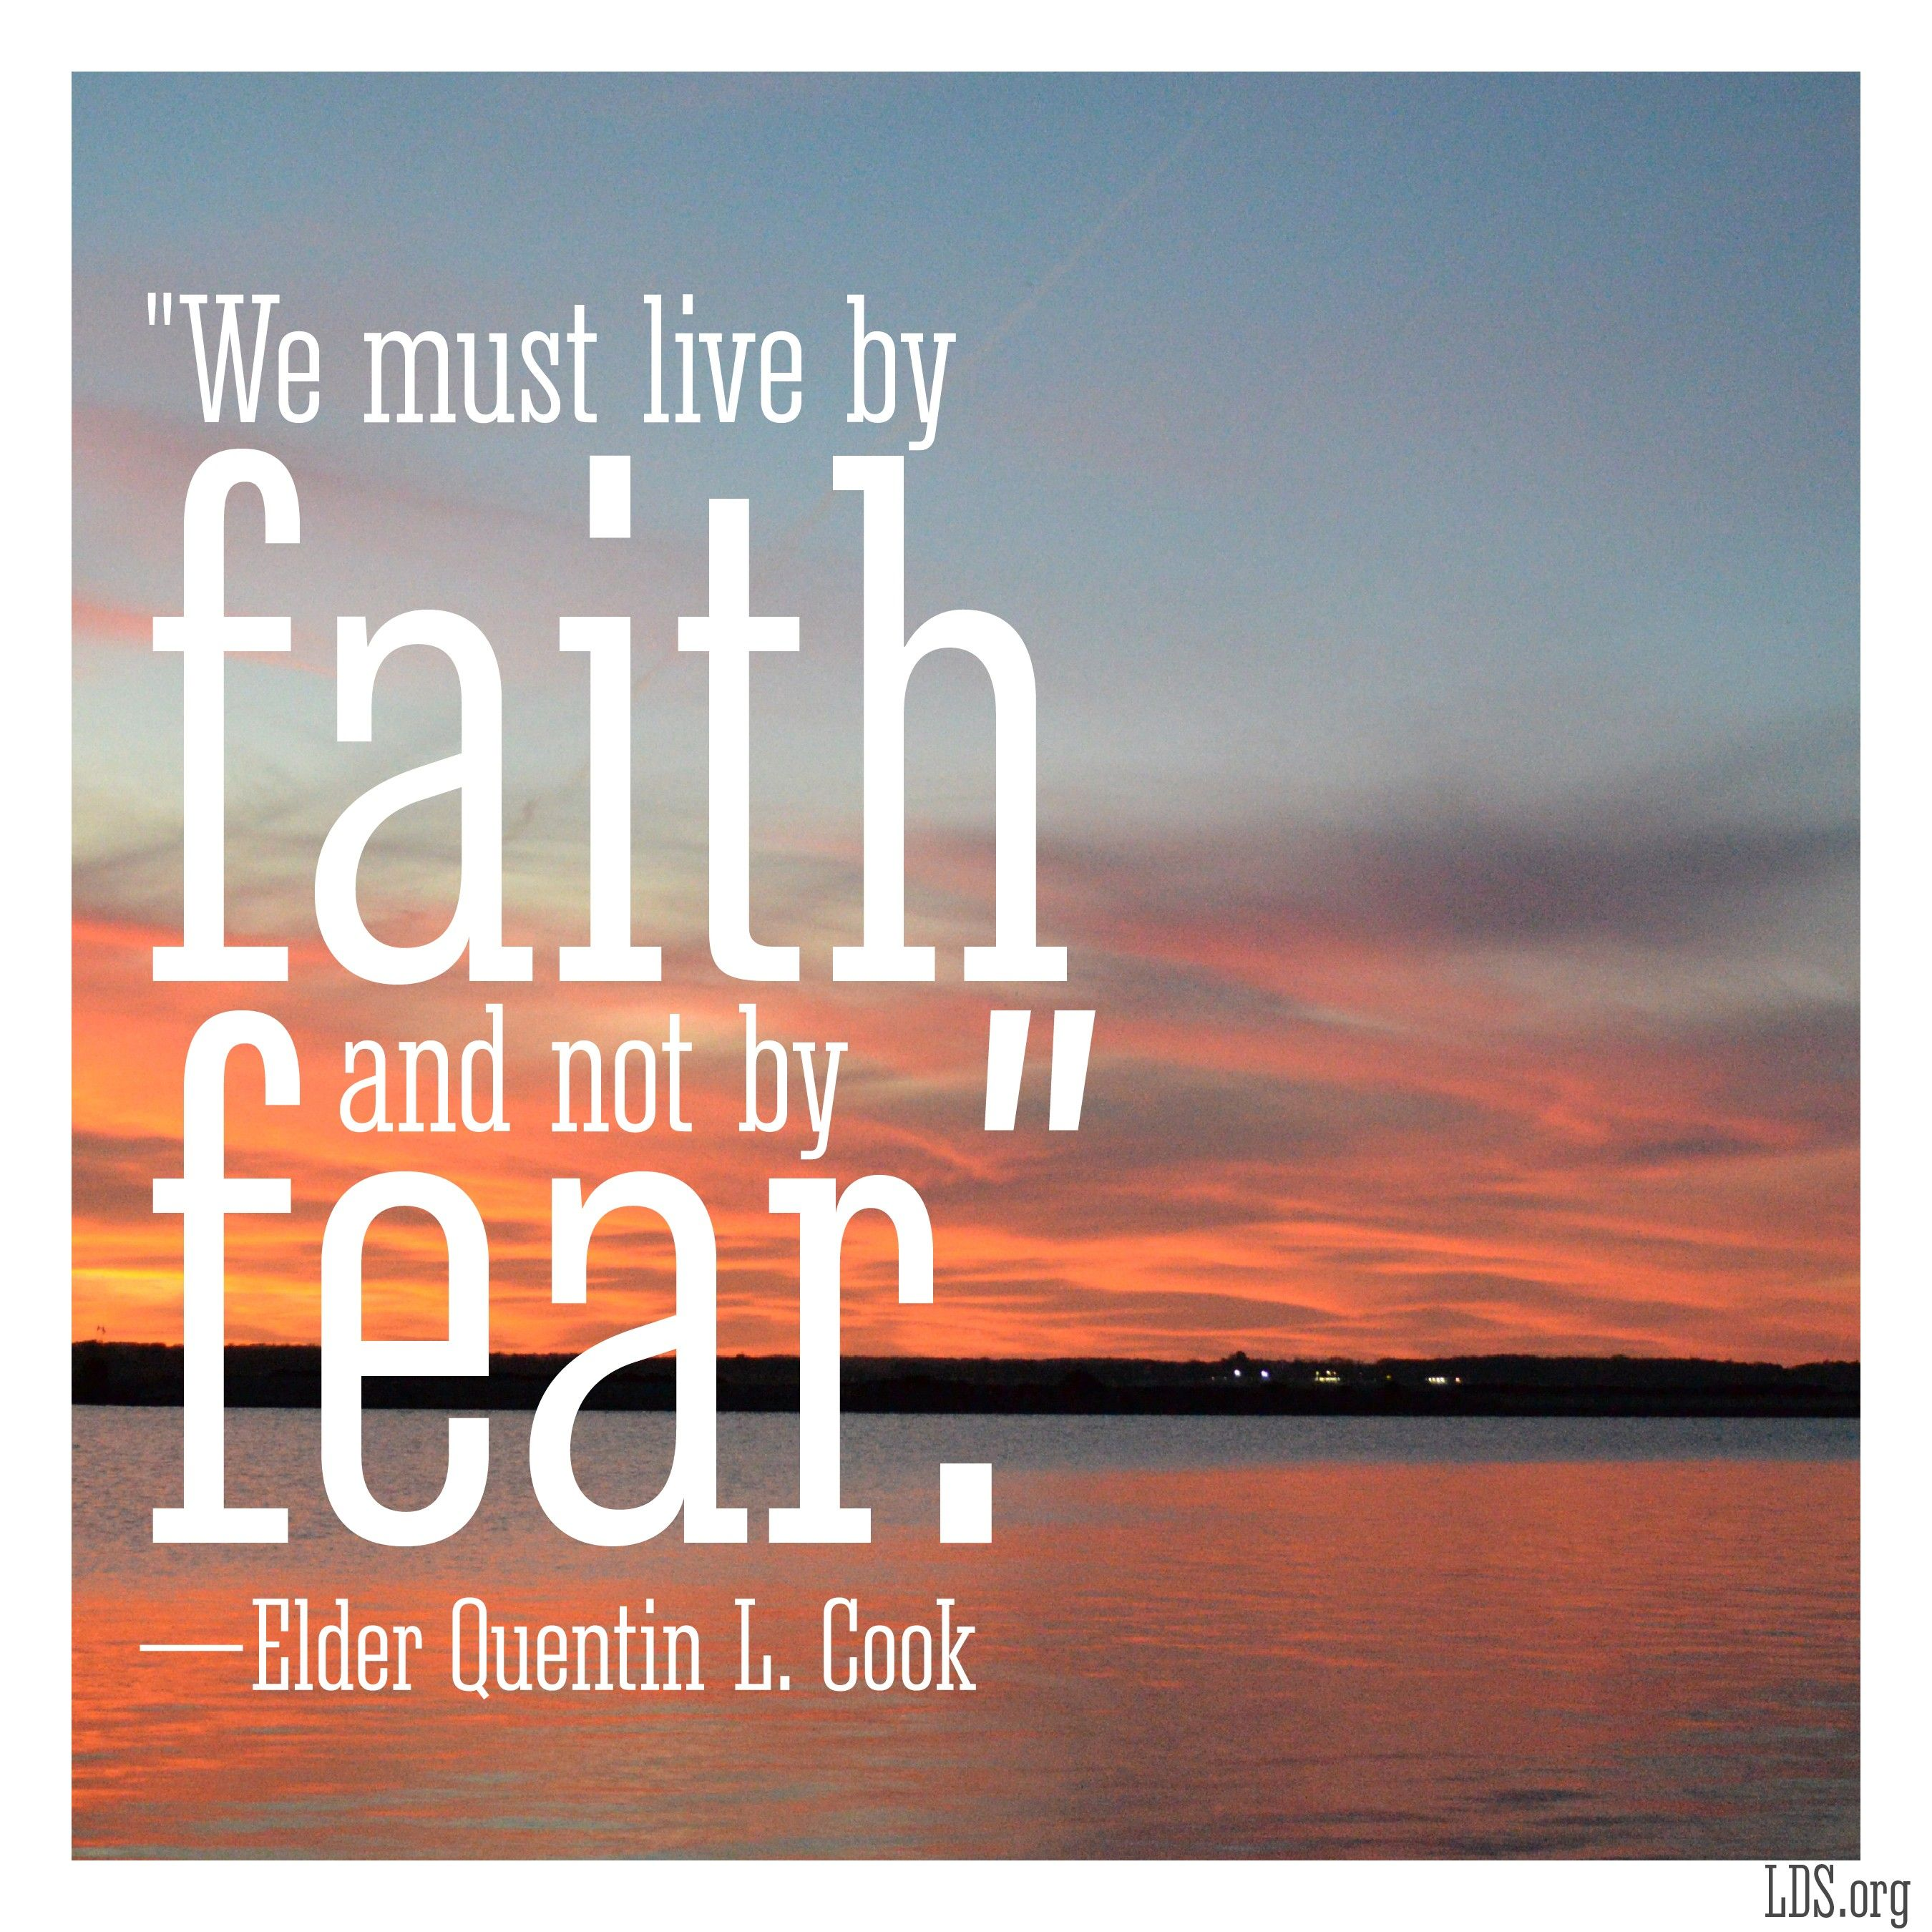 """""""We must live by faith and not by fear.""""—Elder Quentin L. Cook, """"Live by Faith and Not by Fear"""""""